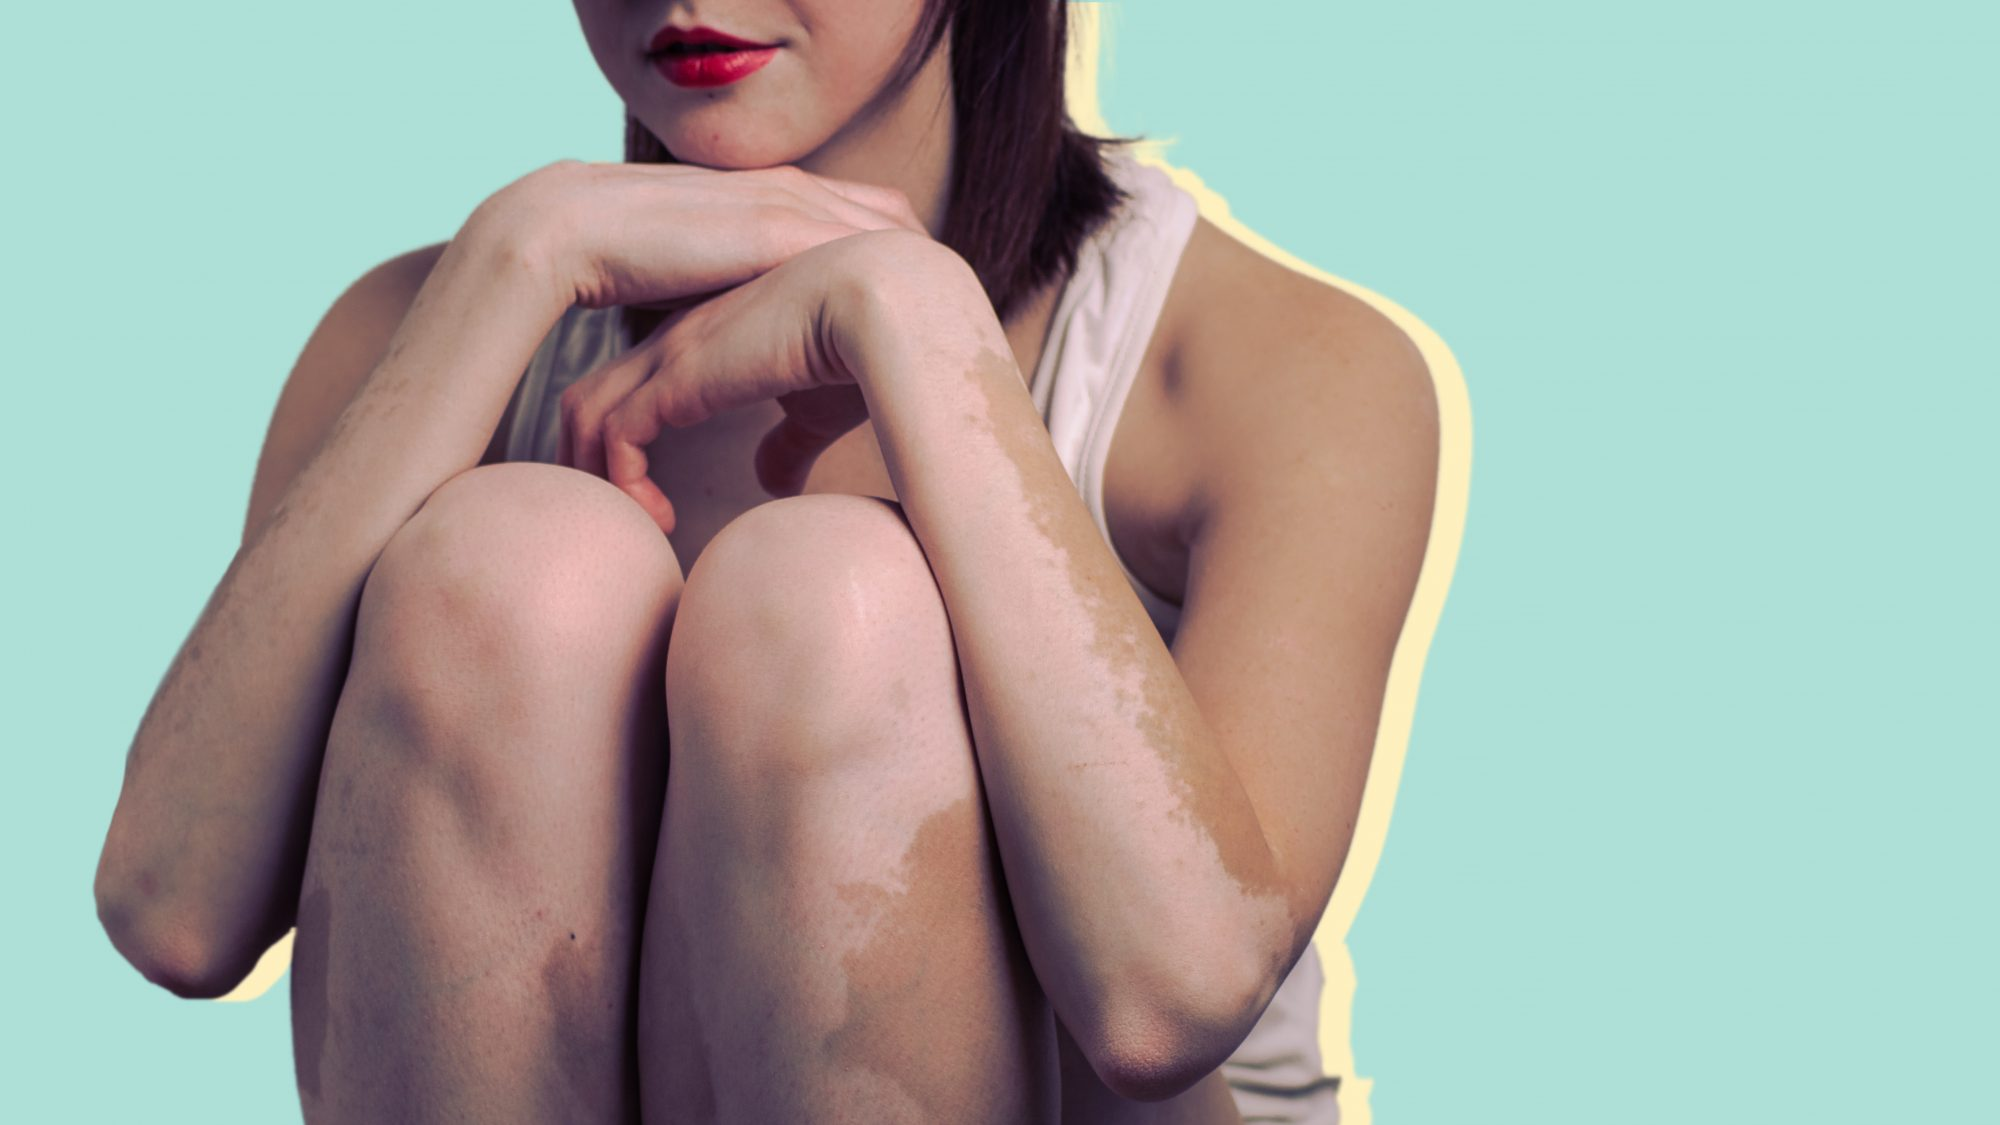 vitiligo treatment diagnosis woman health skin condition